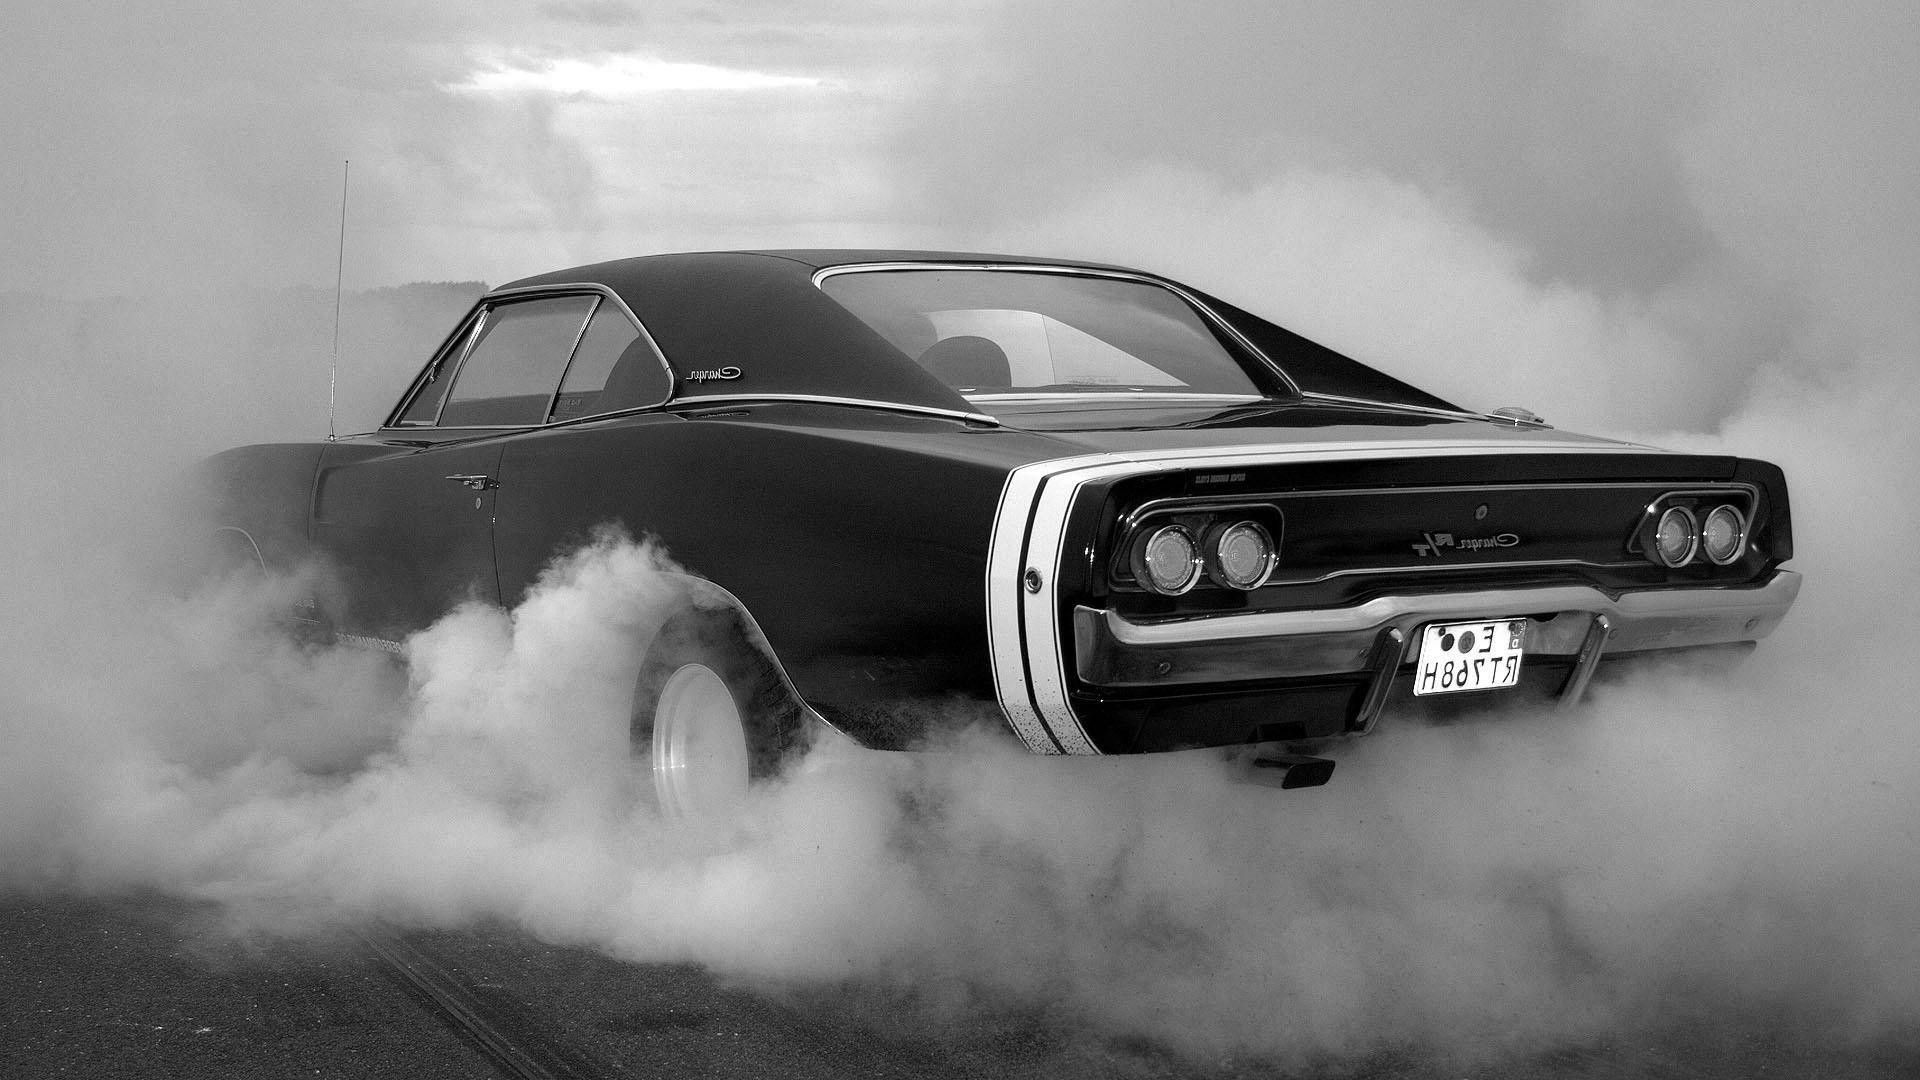 Classic Muscle Cars Wallpapers Top Free Classic Muscle Cars Backgrounds Wallpaperaccess